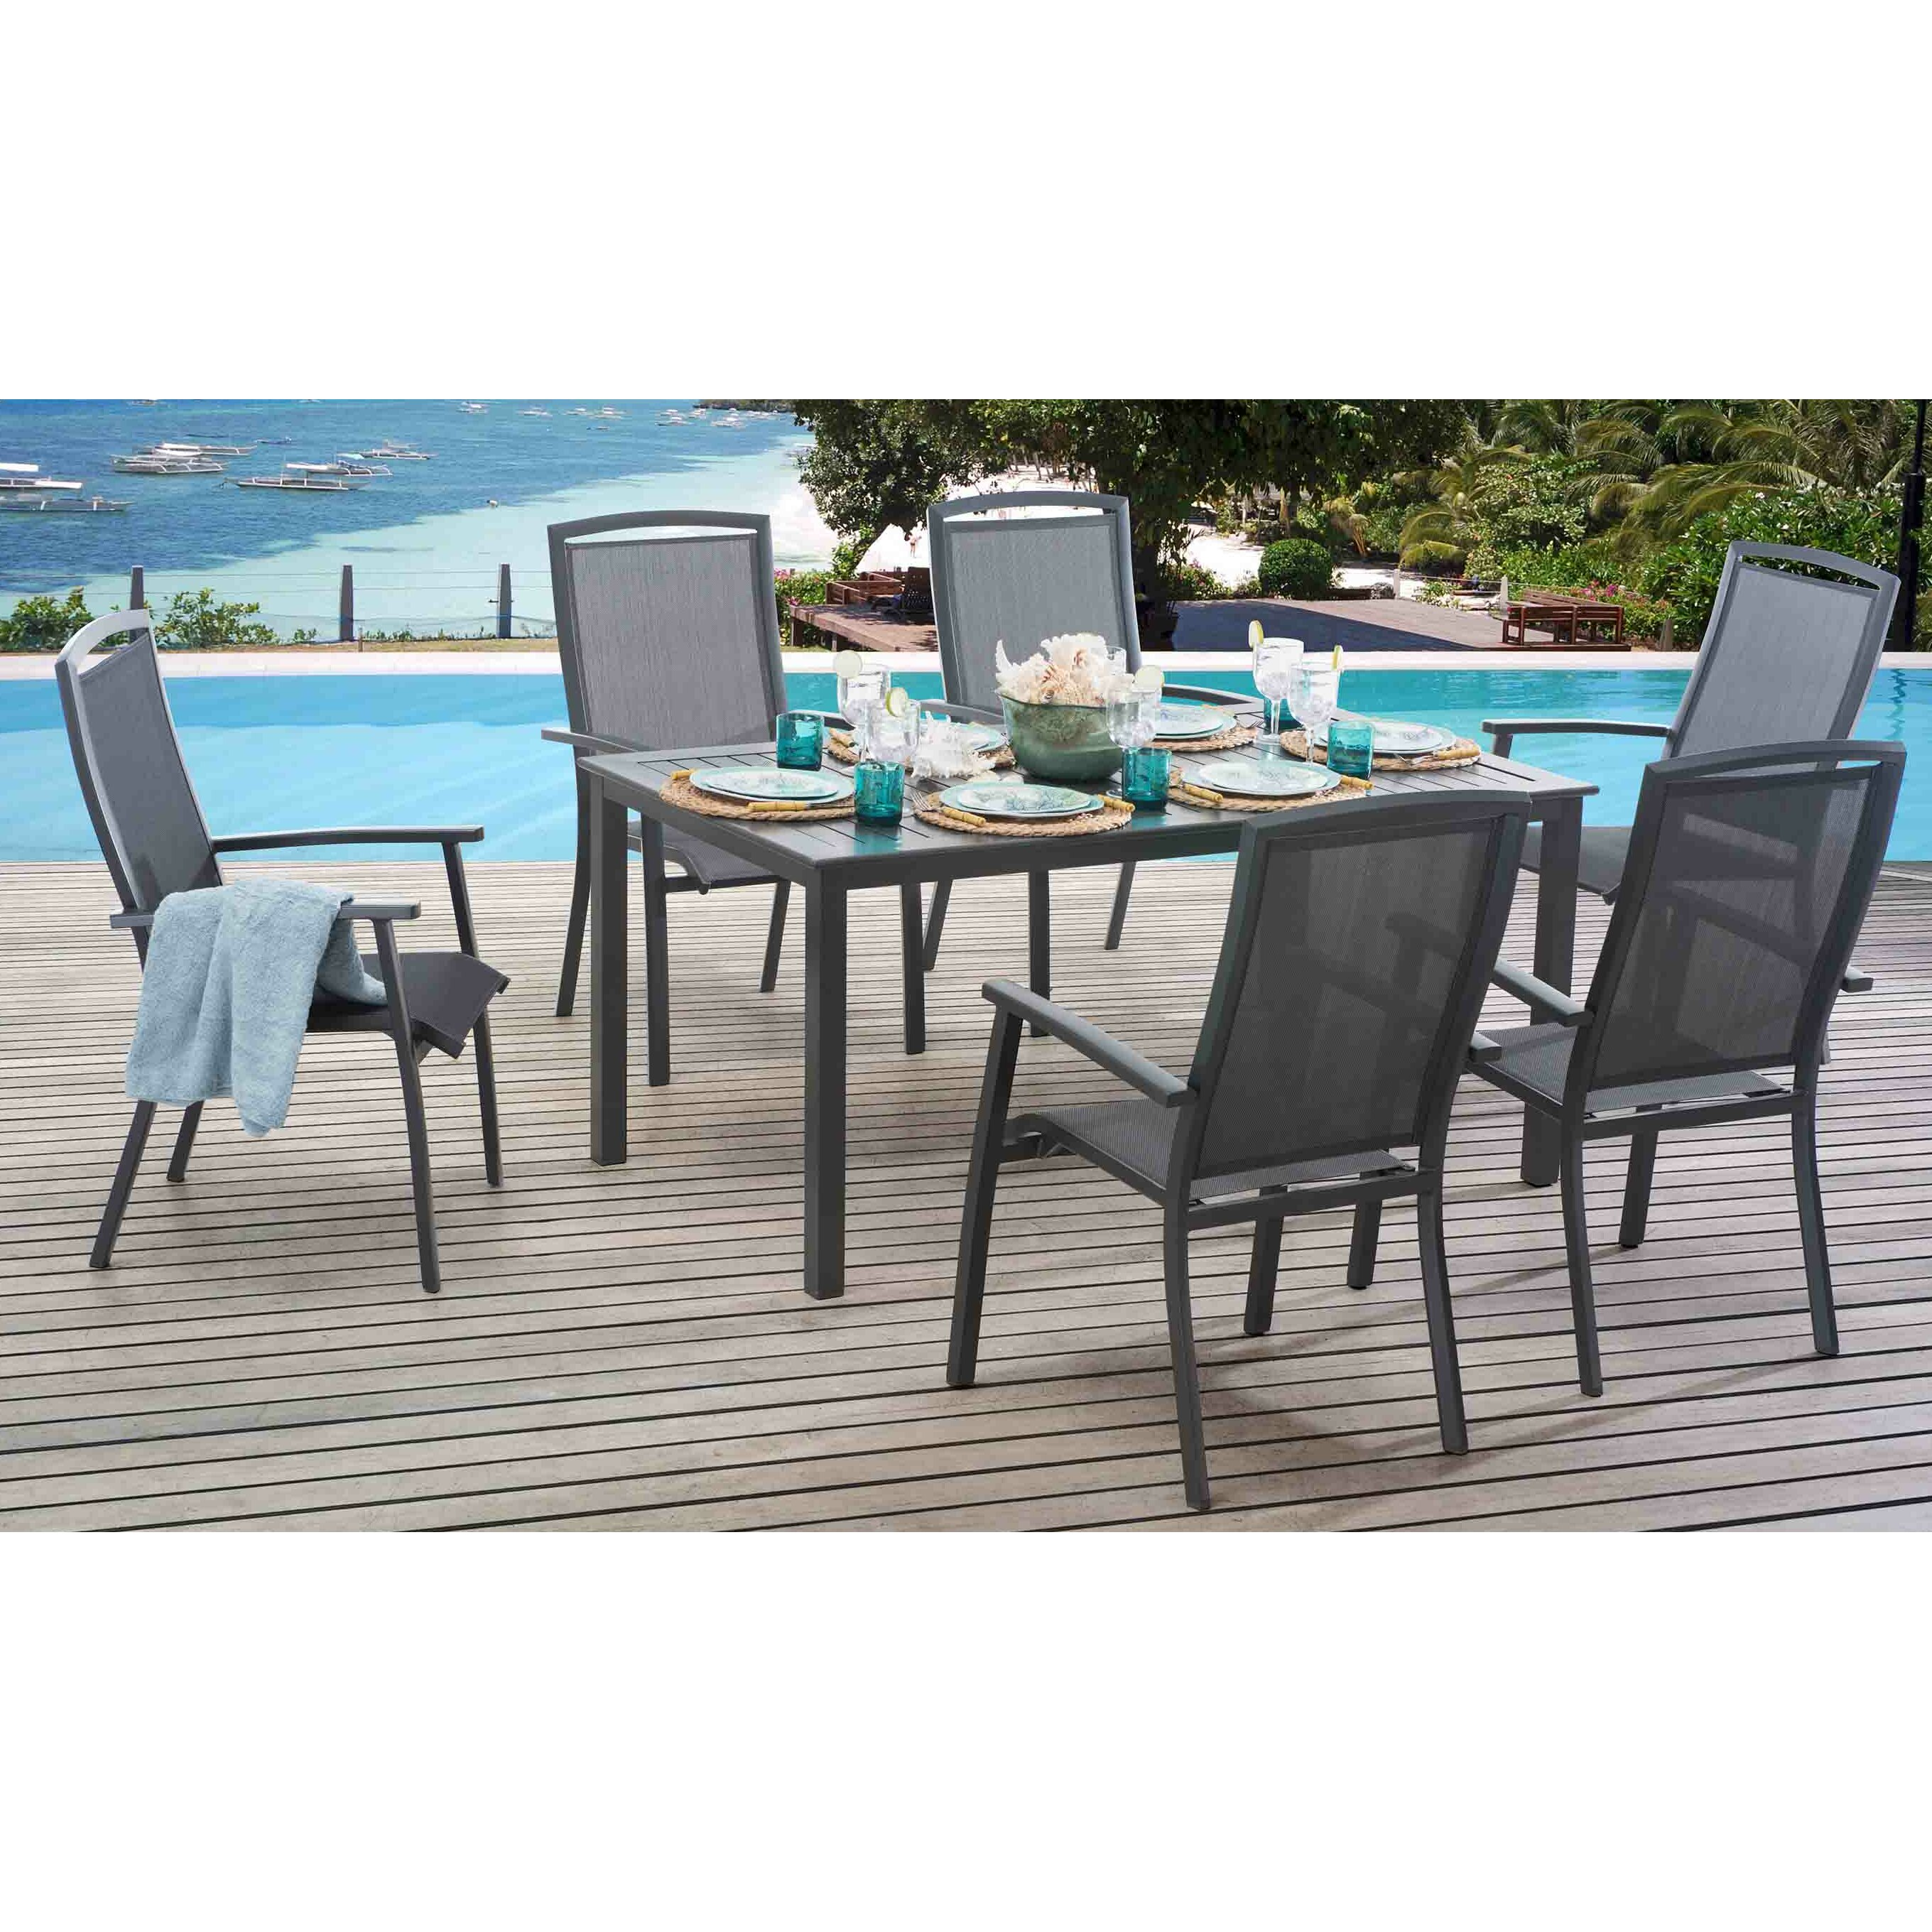 Brayden Studio Stever 7 Piece Dining Set Wayfair